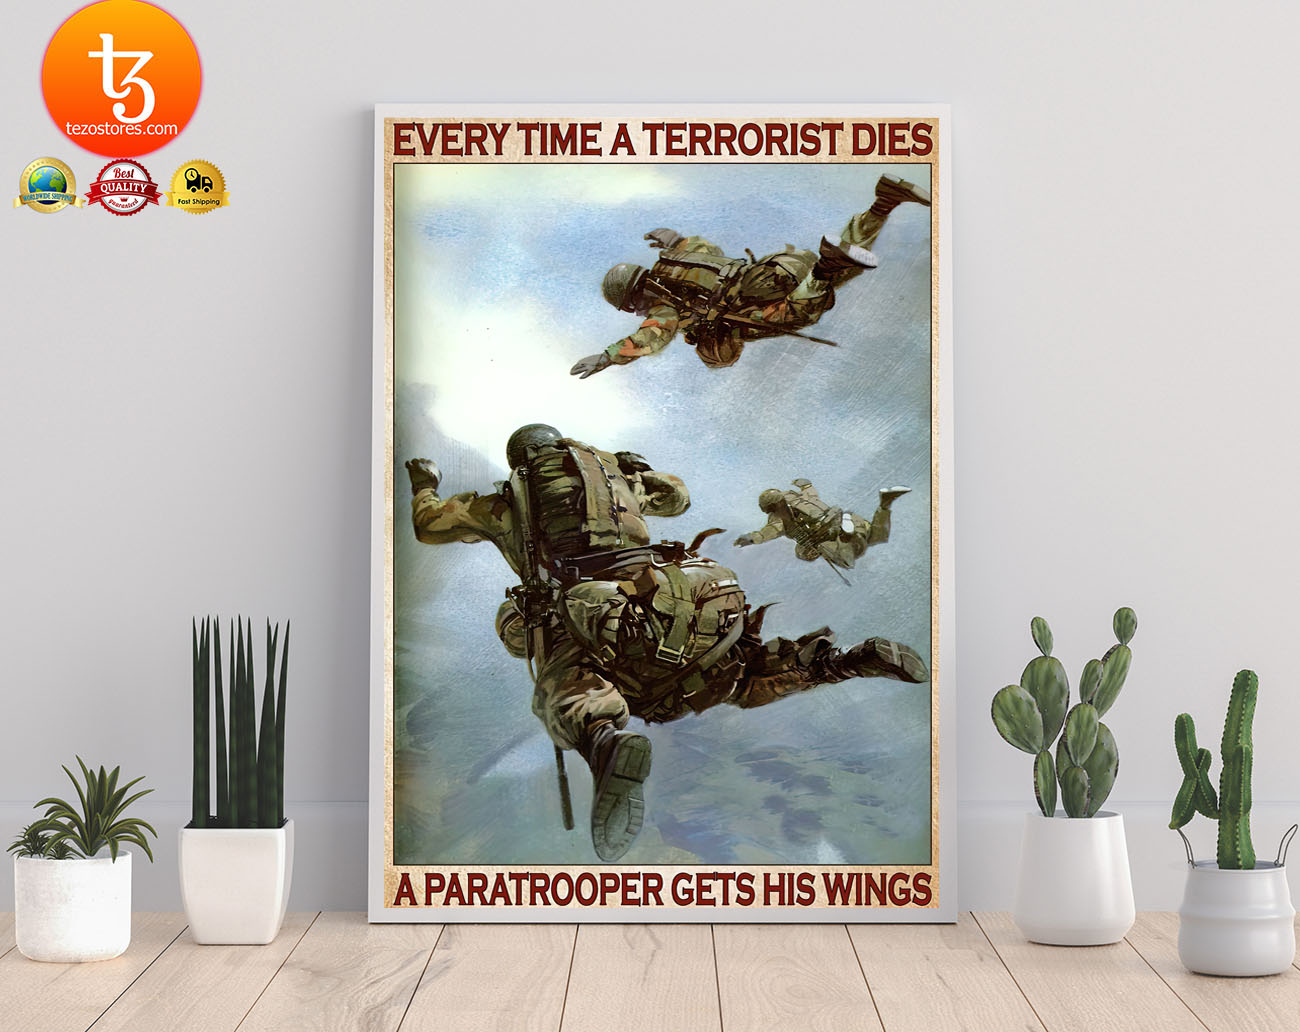 Every time a terrorist dies a paratrooper gets his wings poster 23